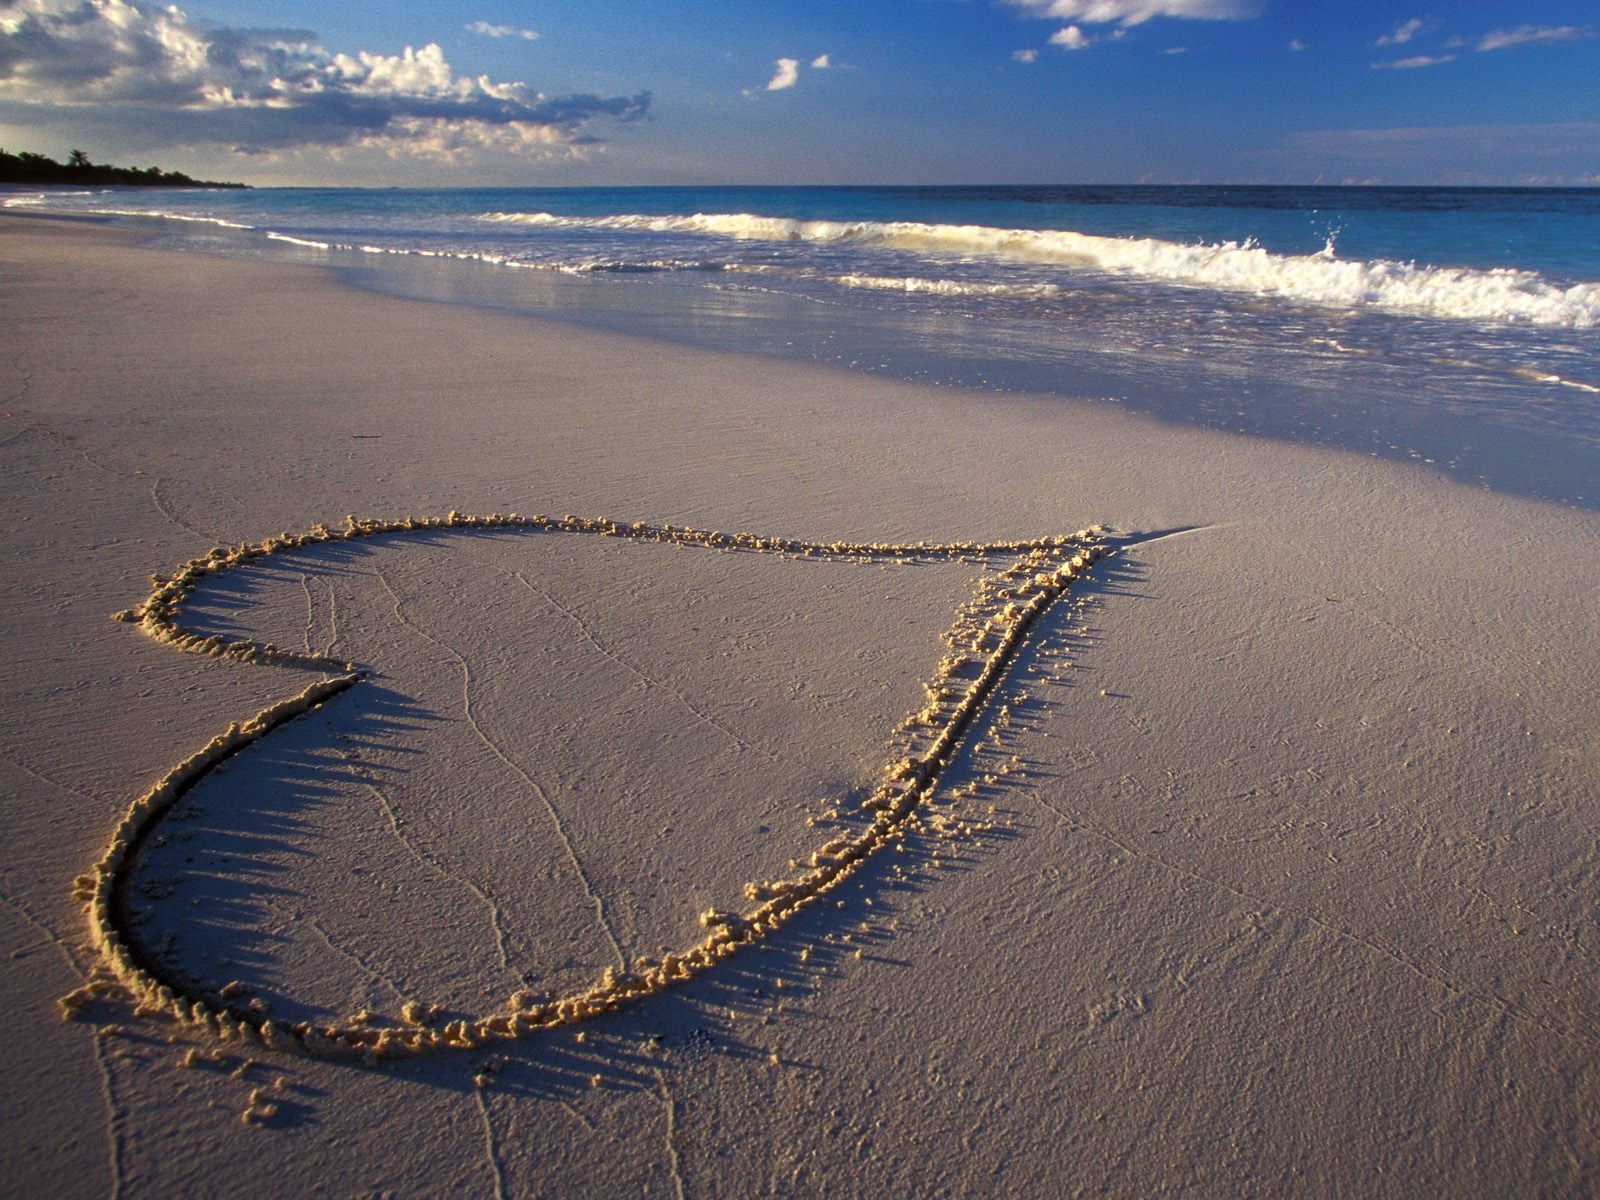 Beach_Love_Nature_Wallpaper